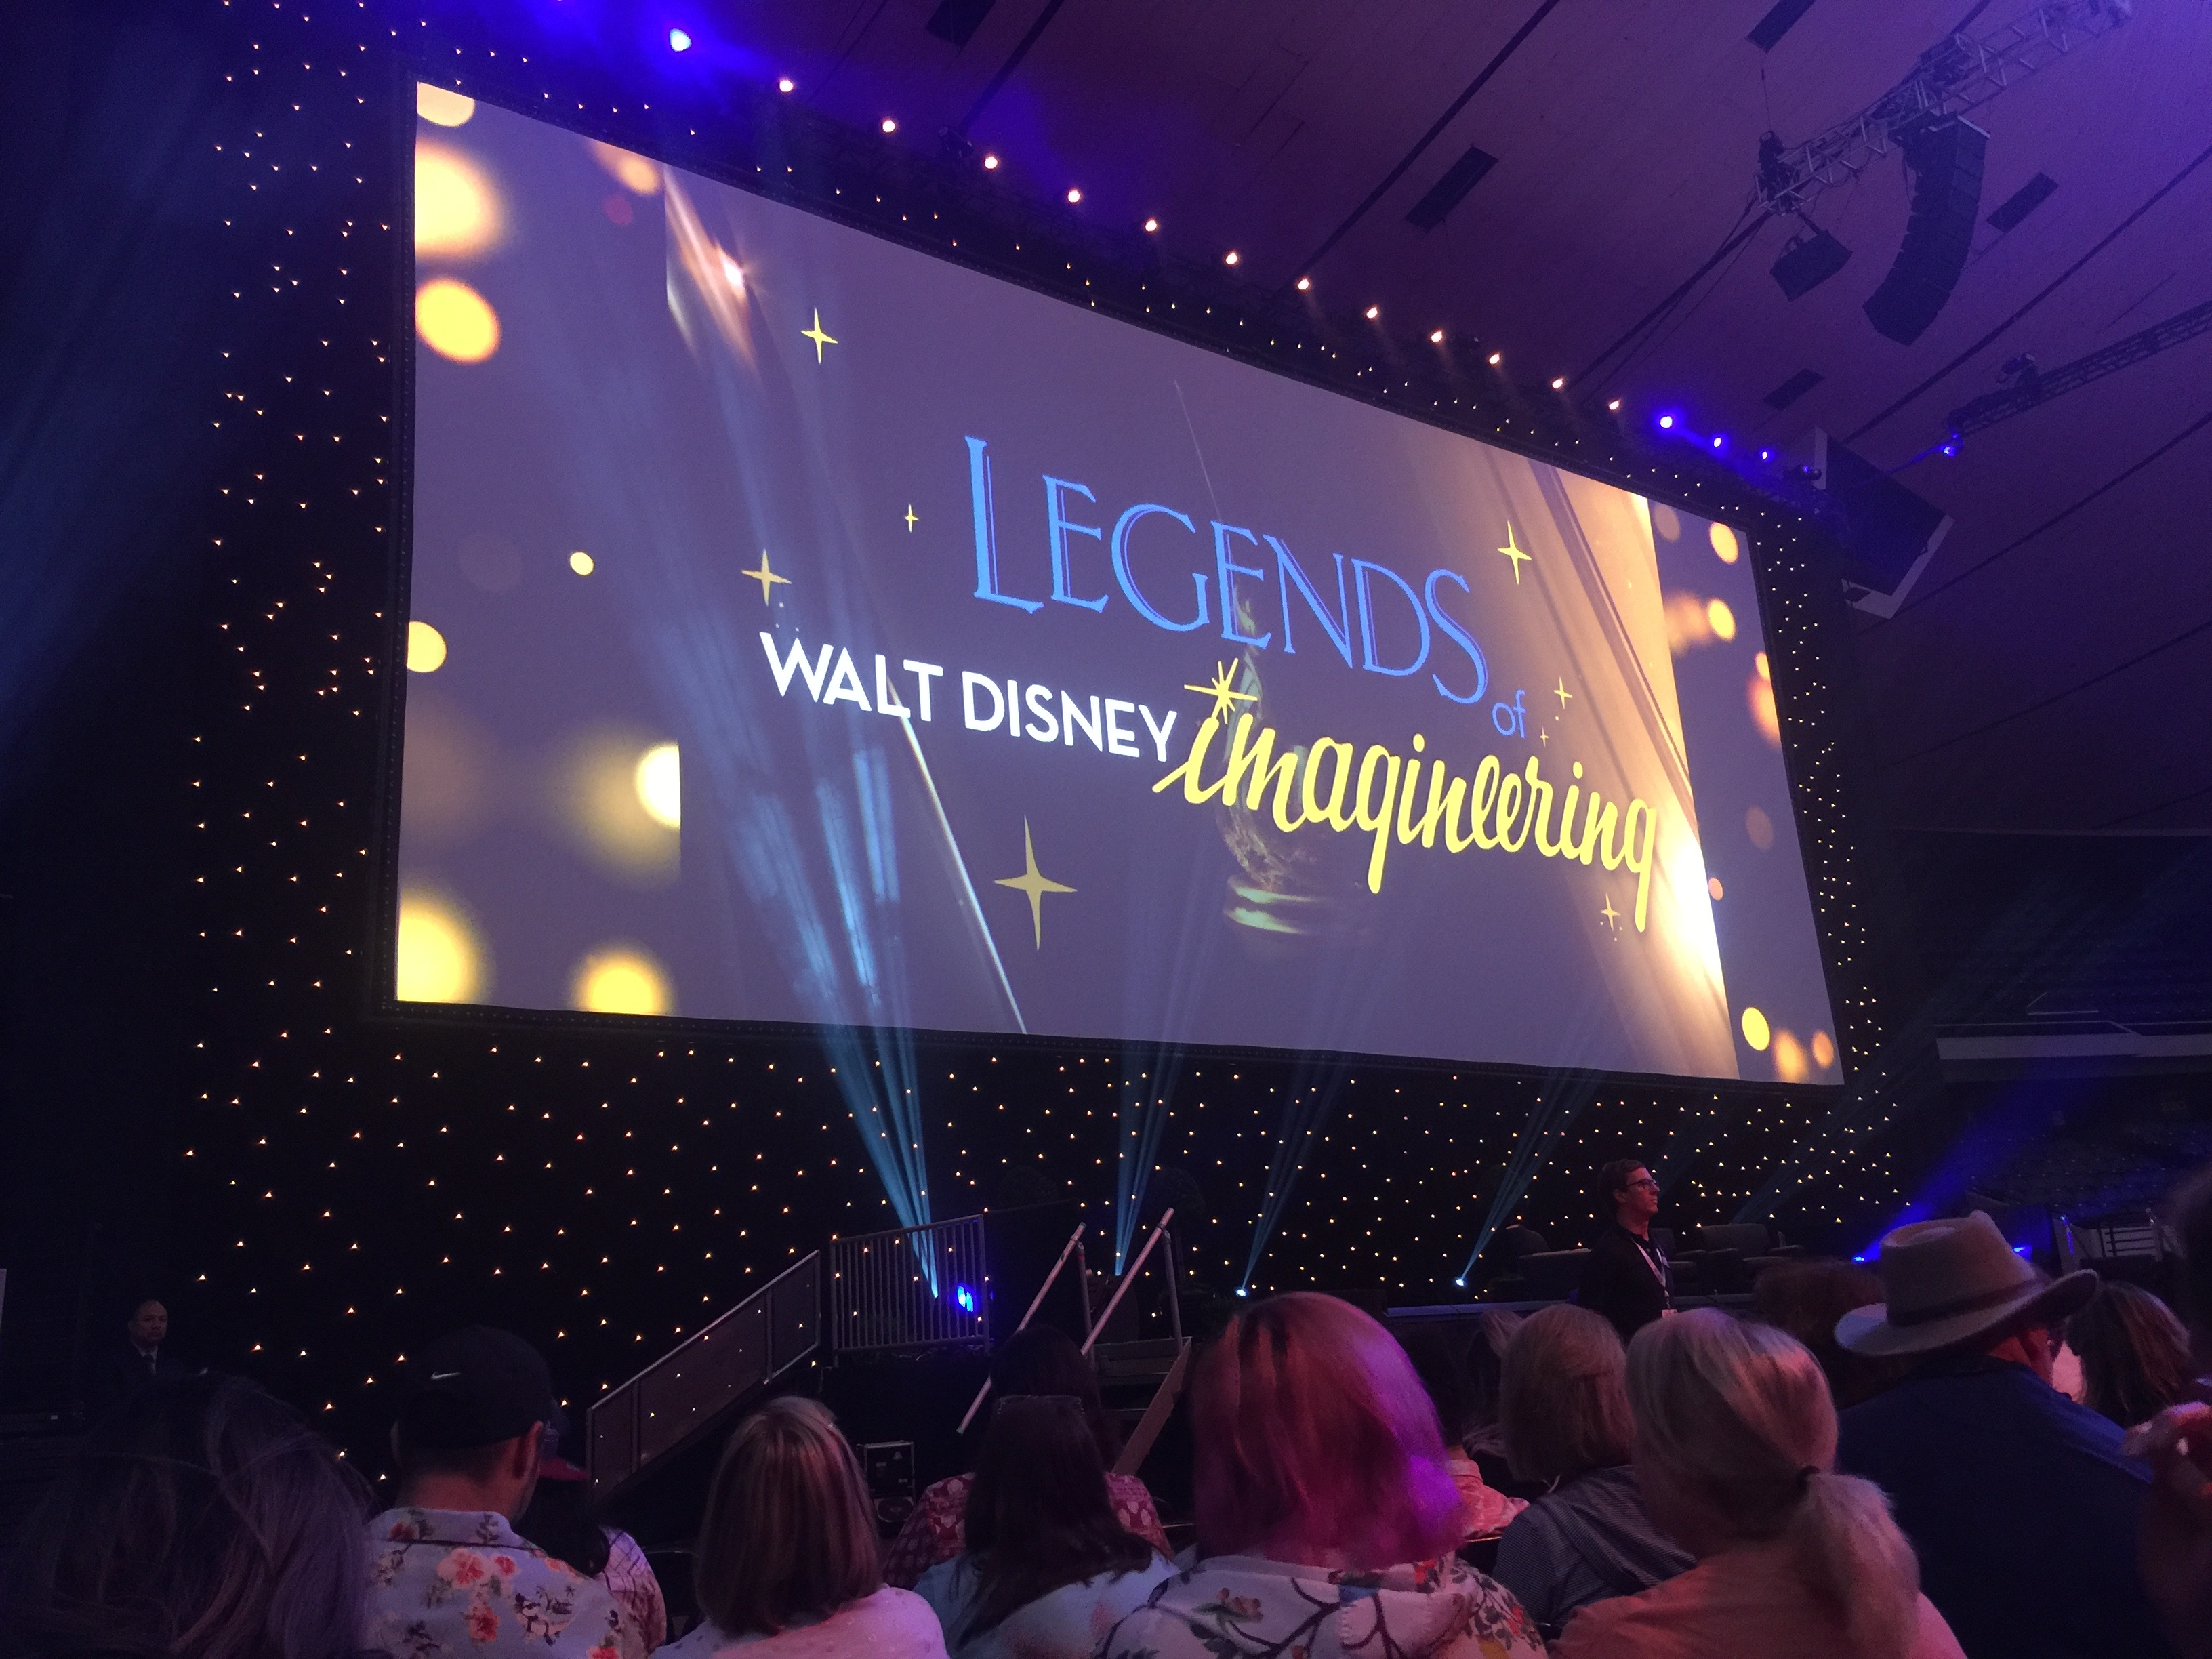 Legends of Walt Disney Imagineering